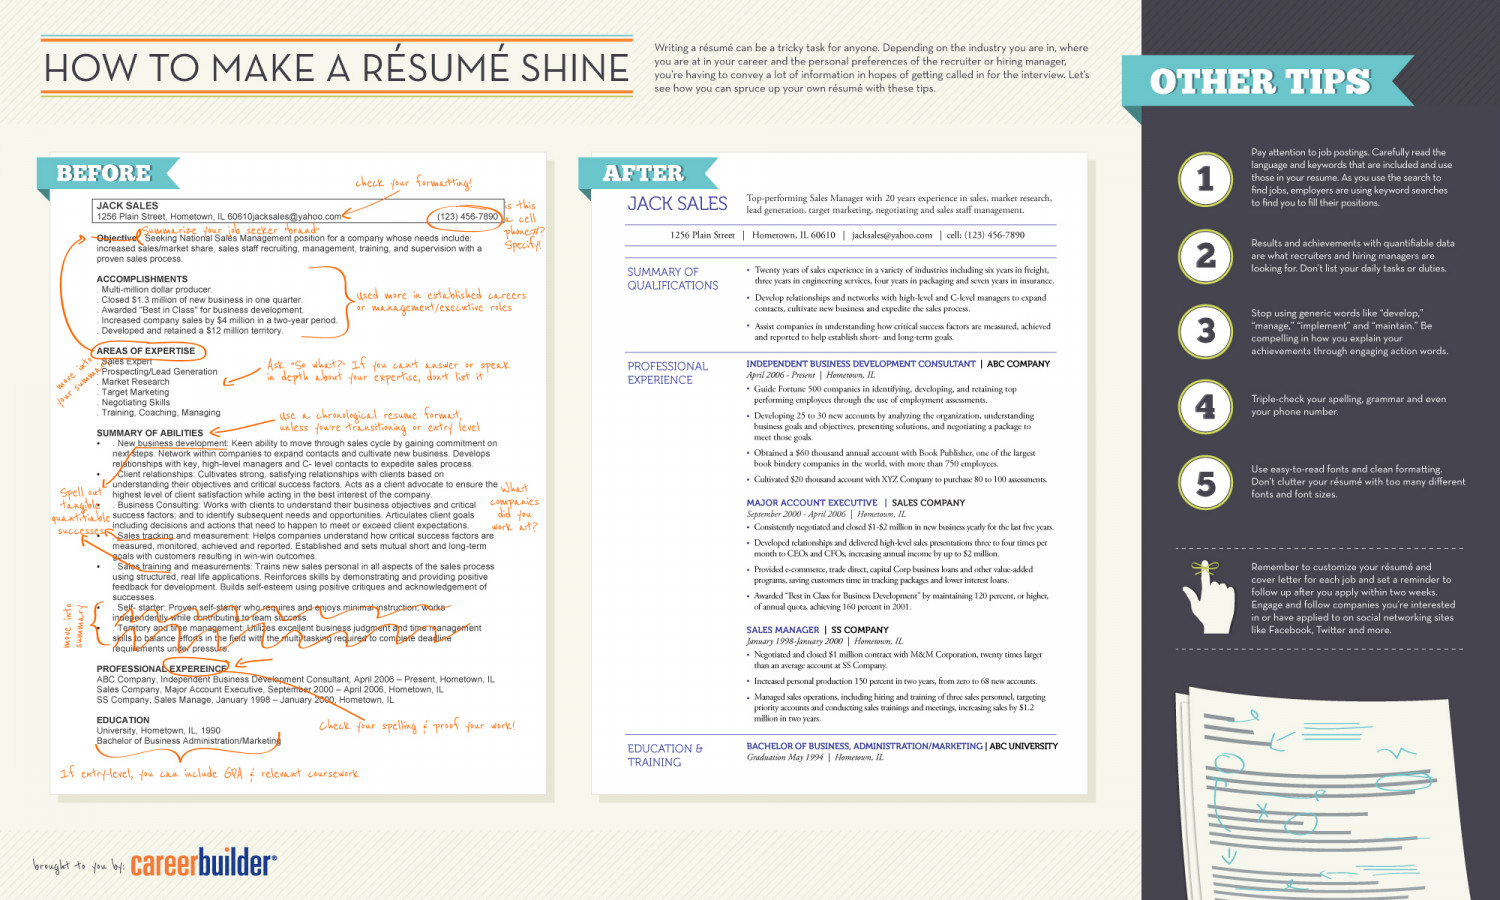 How To Make A Résumé Shine Infographic  Careerbuilder Create Resume